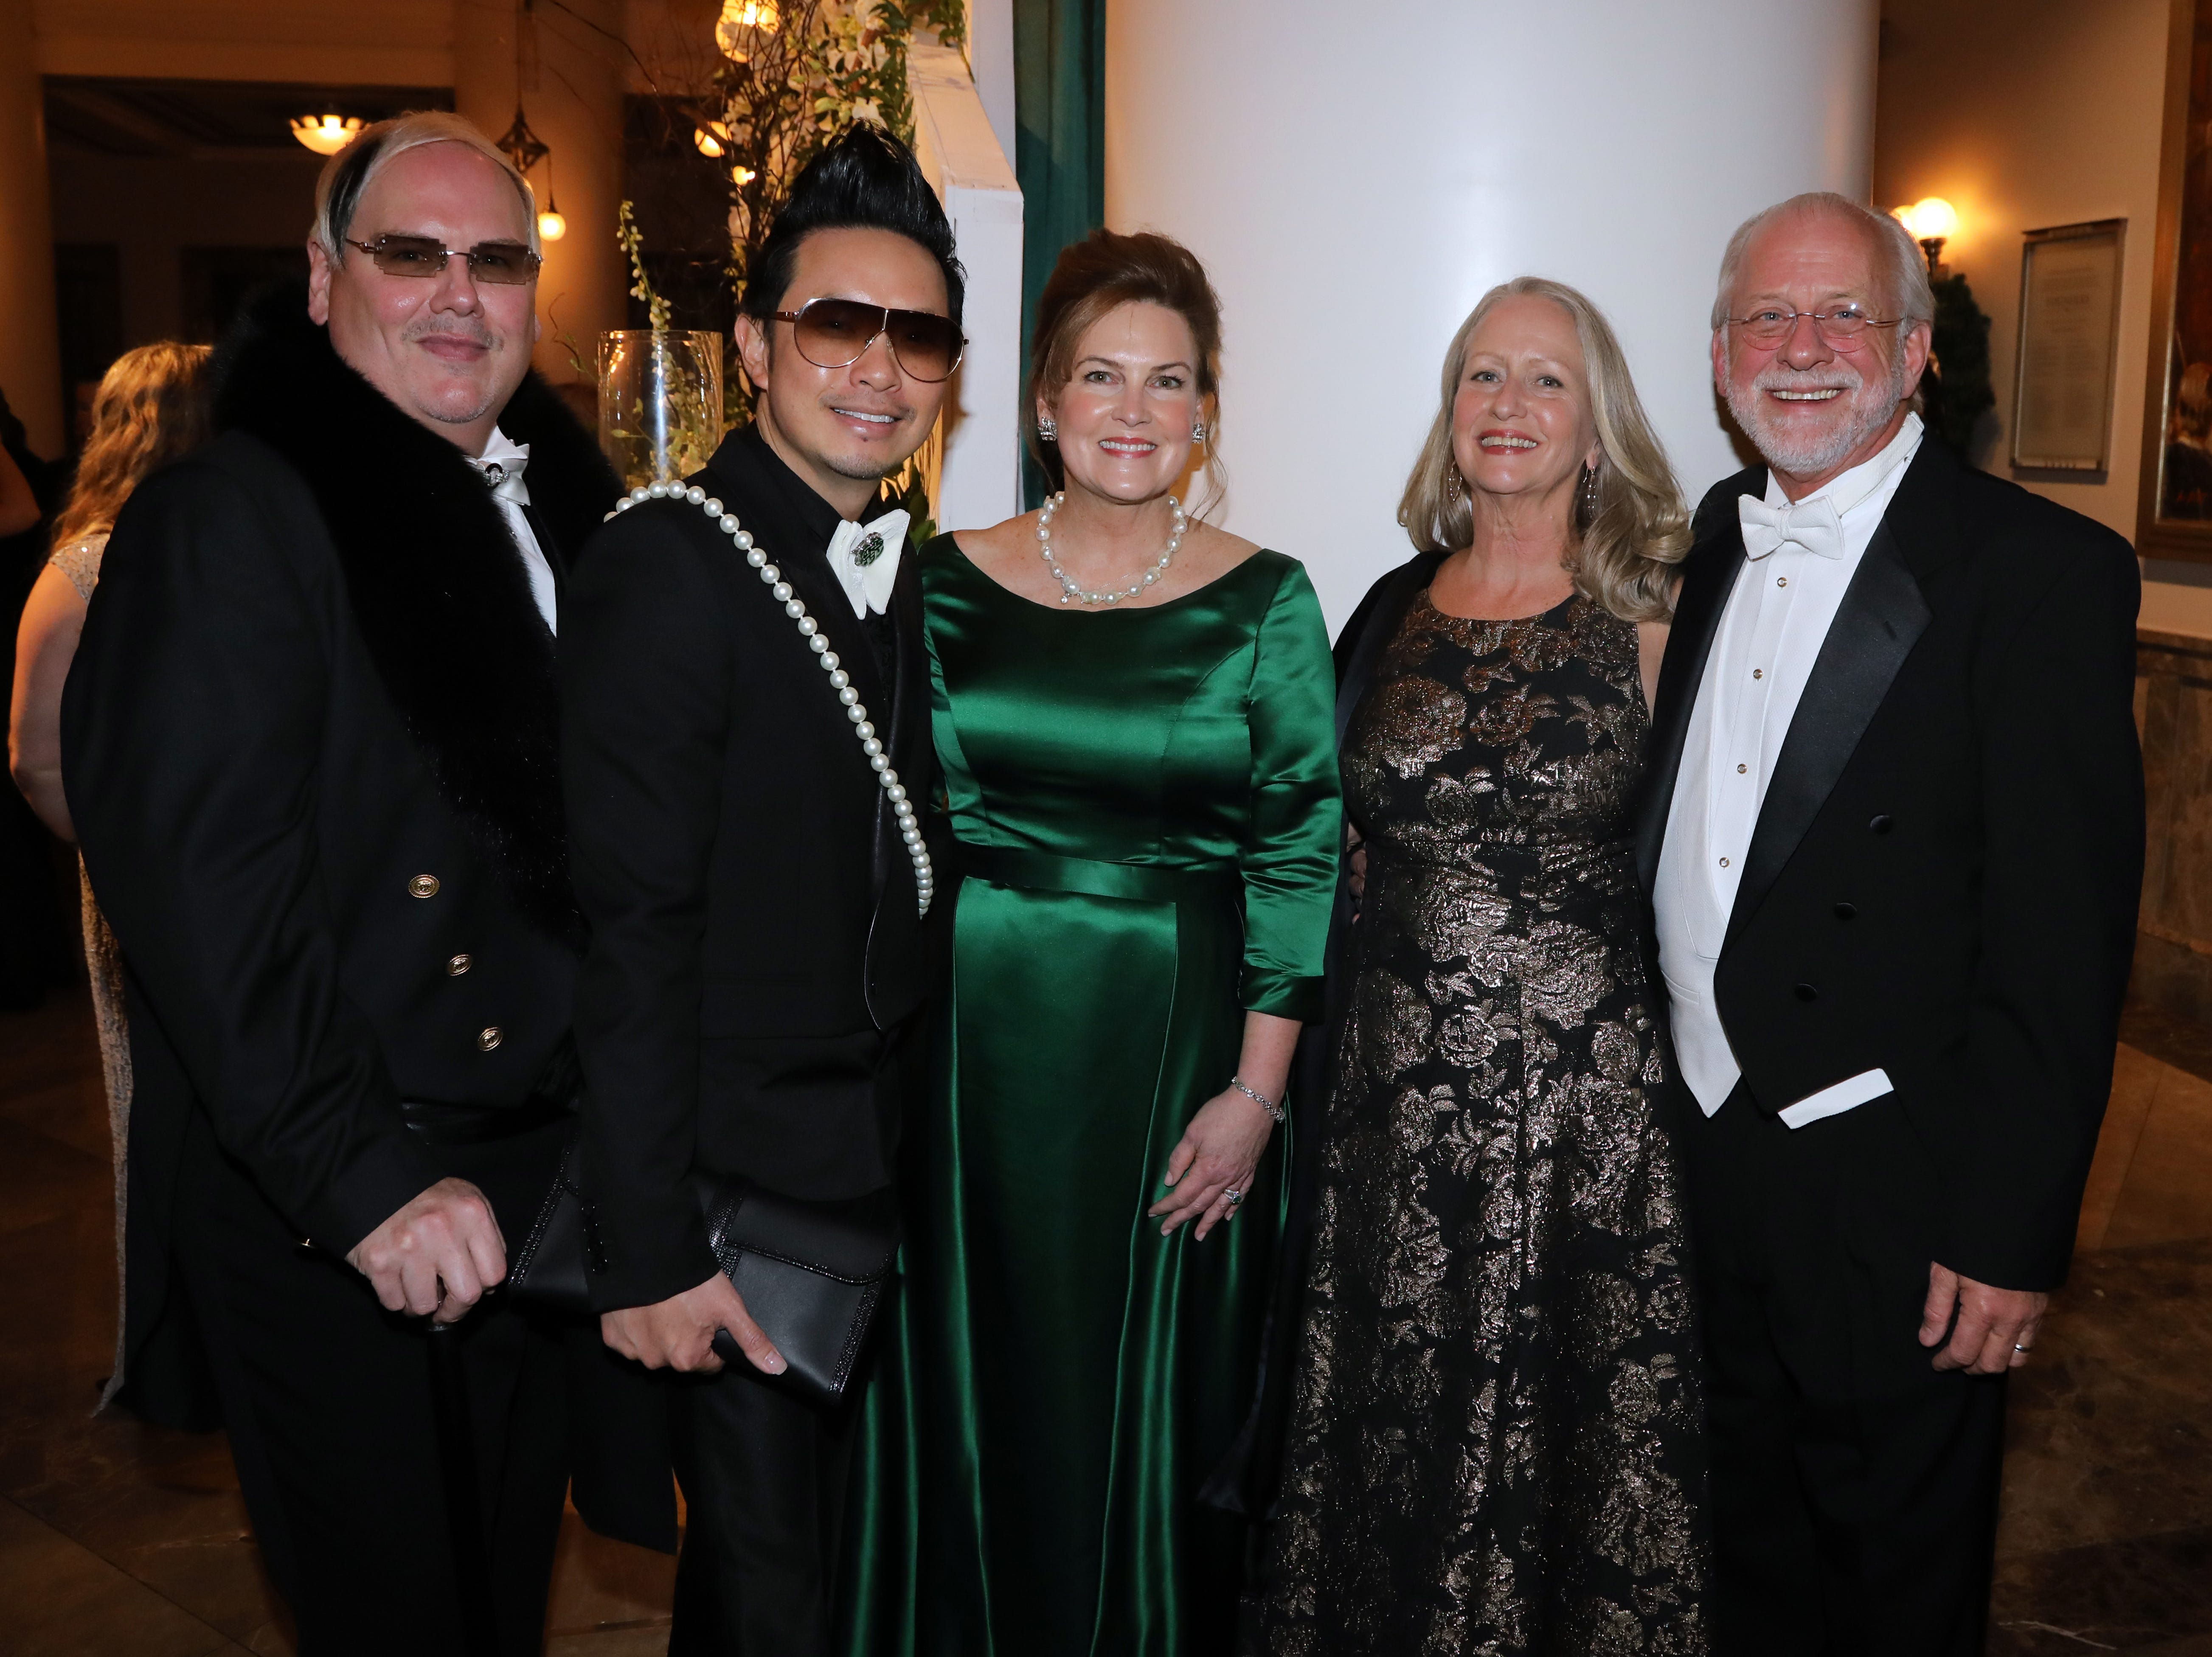 Johnathon and Newman Arndt, Laurie Seabury, Jan and Alan Valentine at the 34th annual Symphony Ball on Saturday, December 8, 2018, at Schermerhorn Symphony Center.